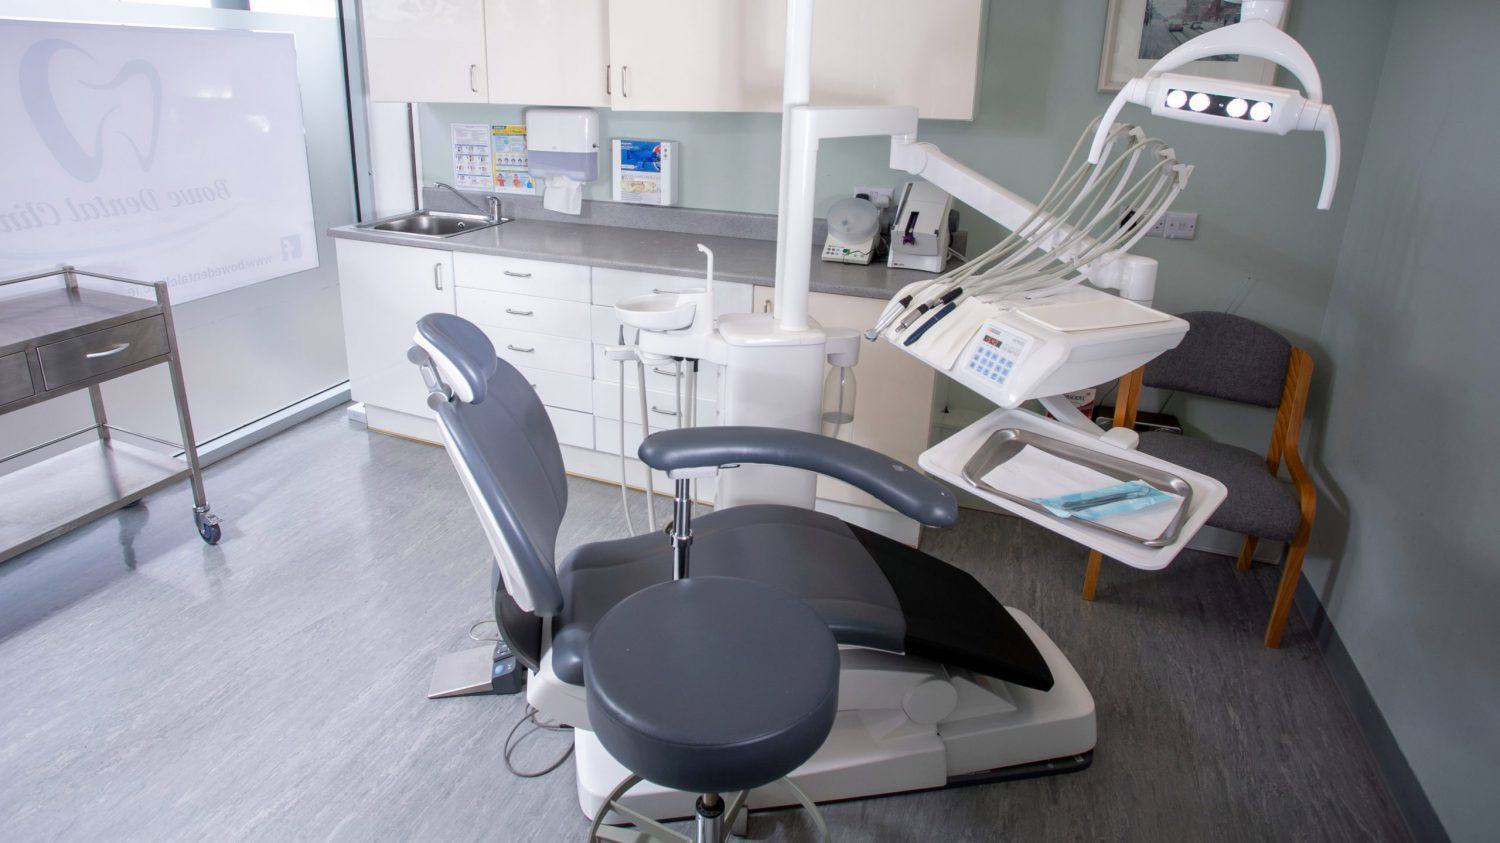 Bowe Dental and Implant Clinic, Limerick